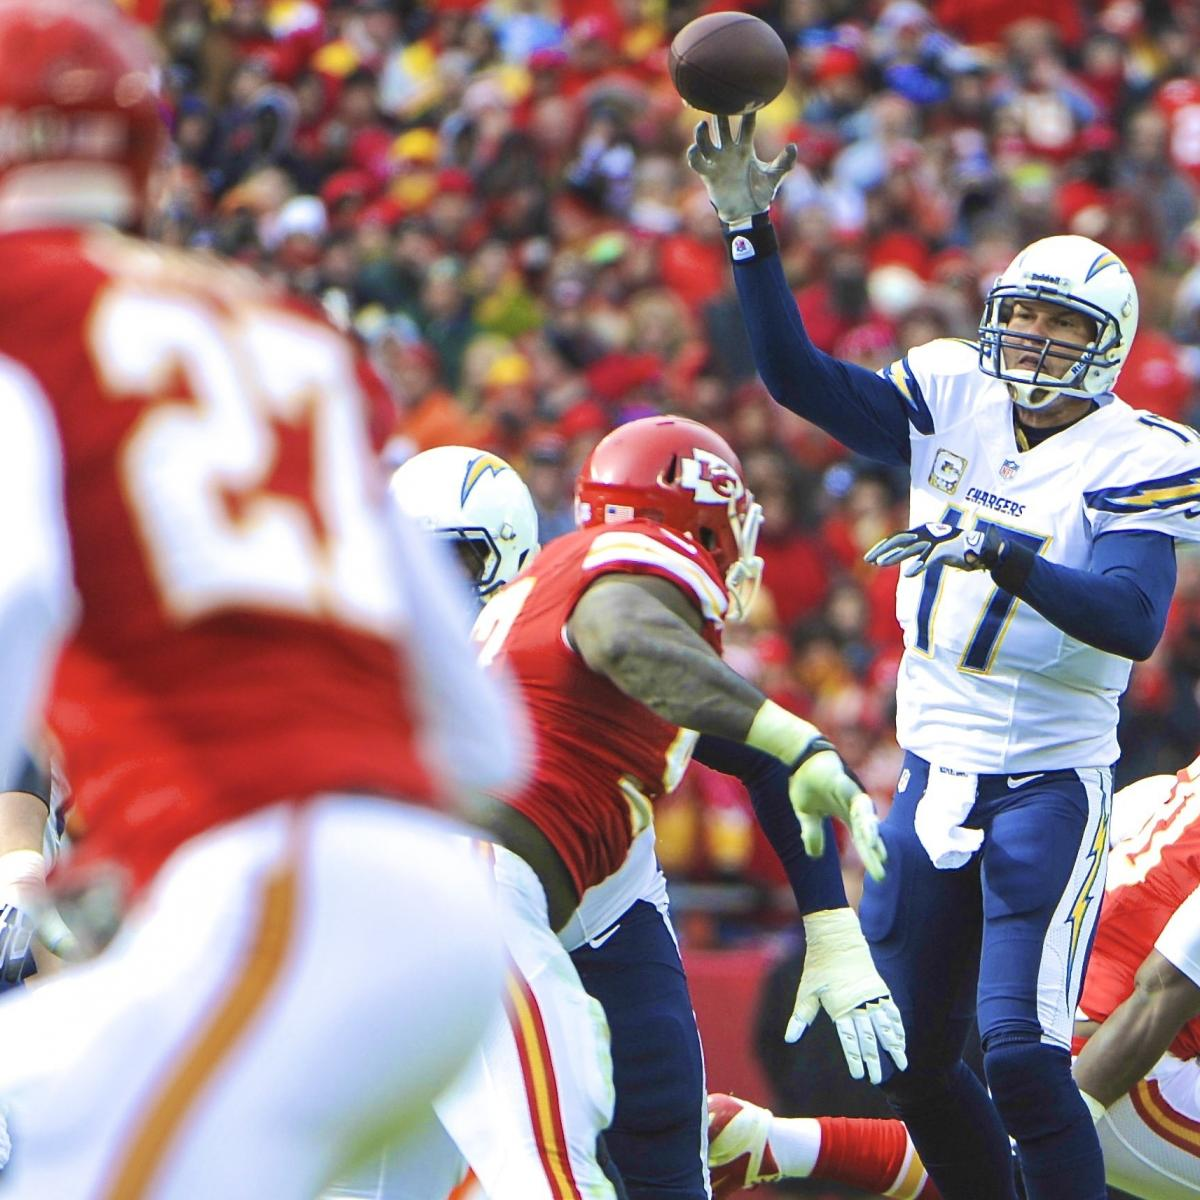 San Diego Chargers Current Score: San Diego Chargers Vs. Kansas City Chiefs: Live Score